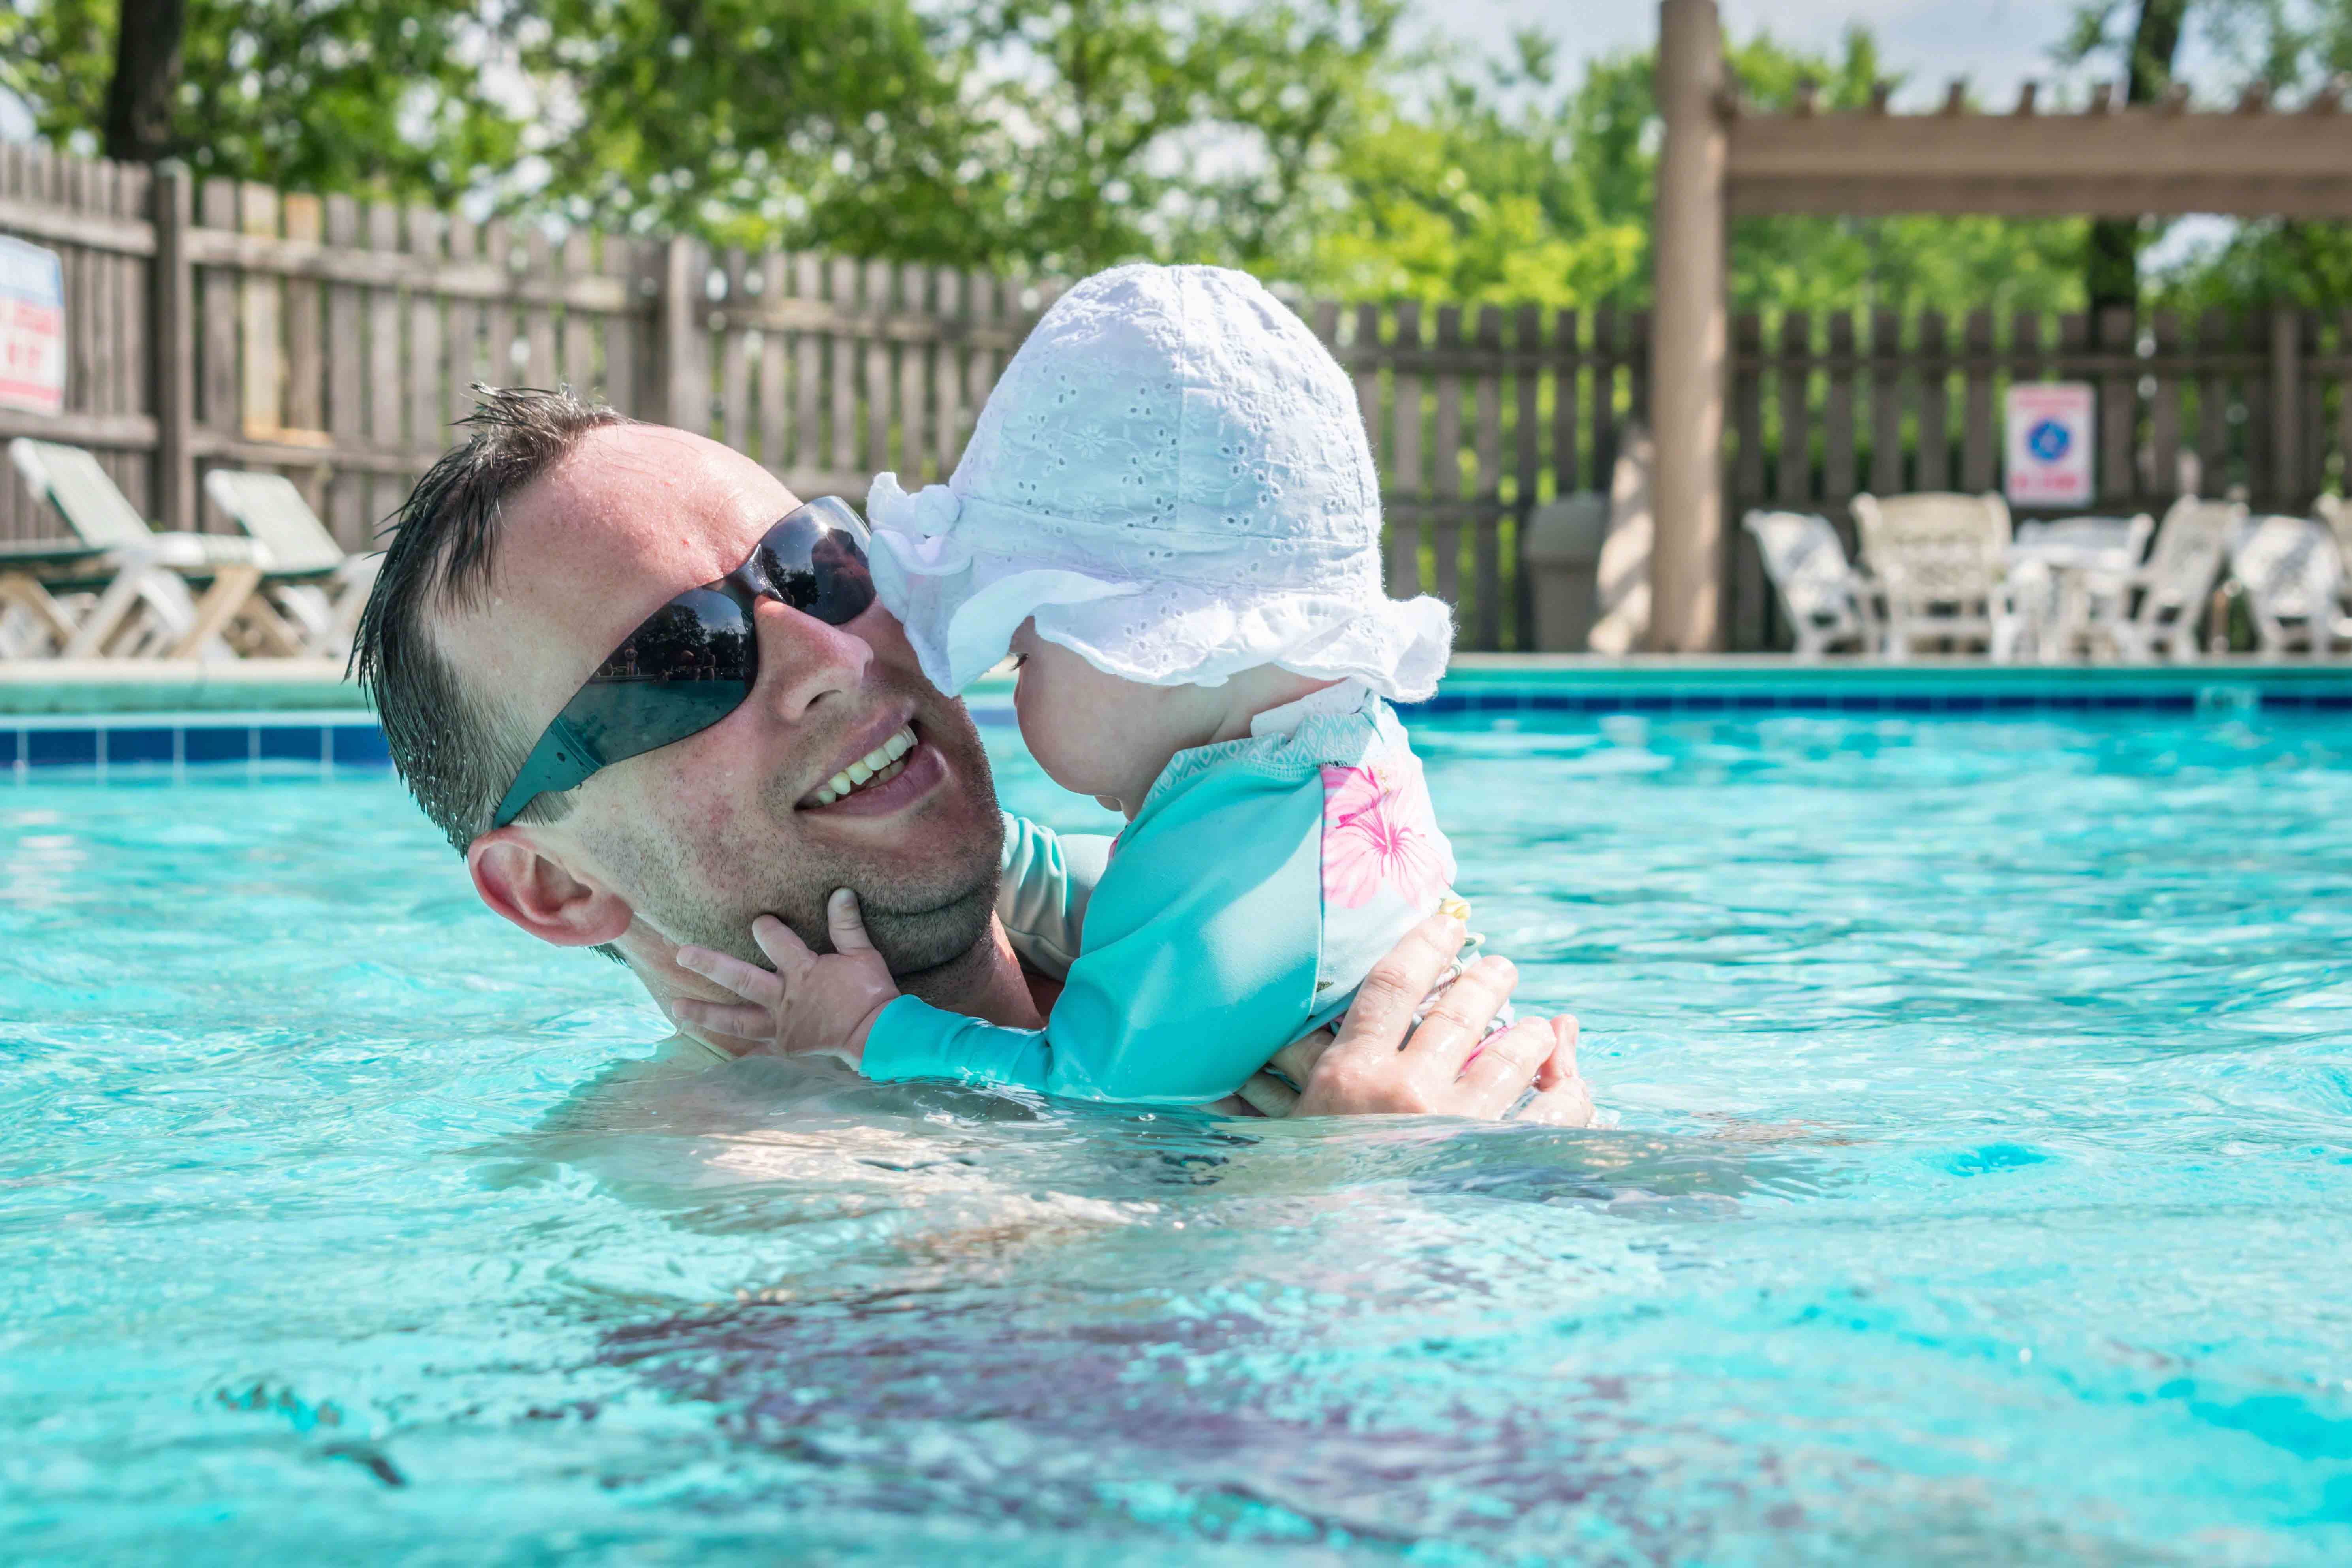 Essential Pool Safety Tips for Summer